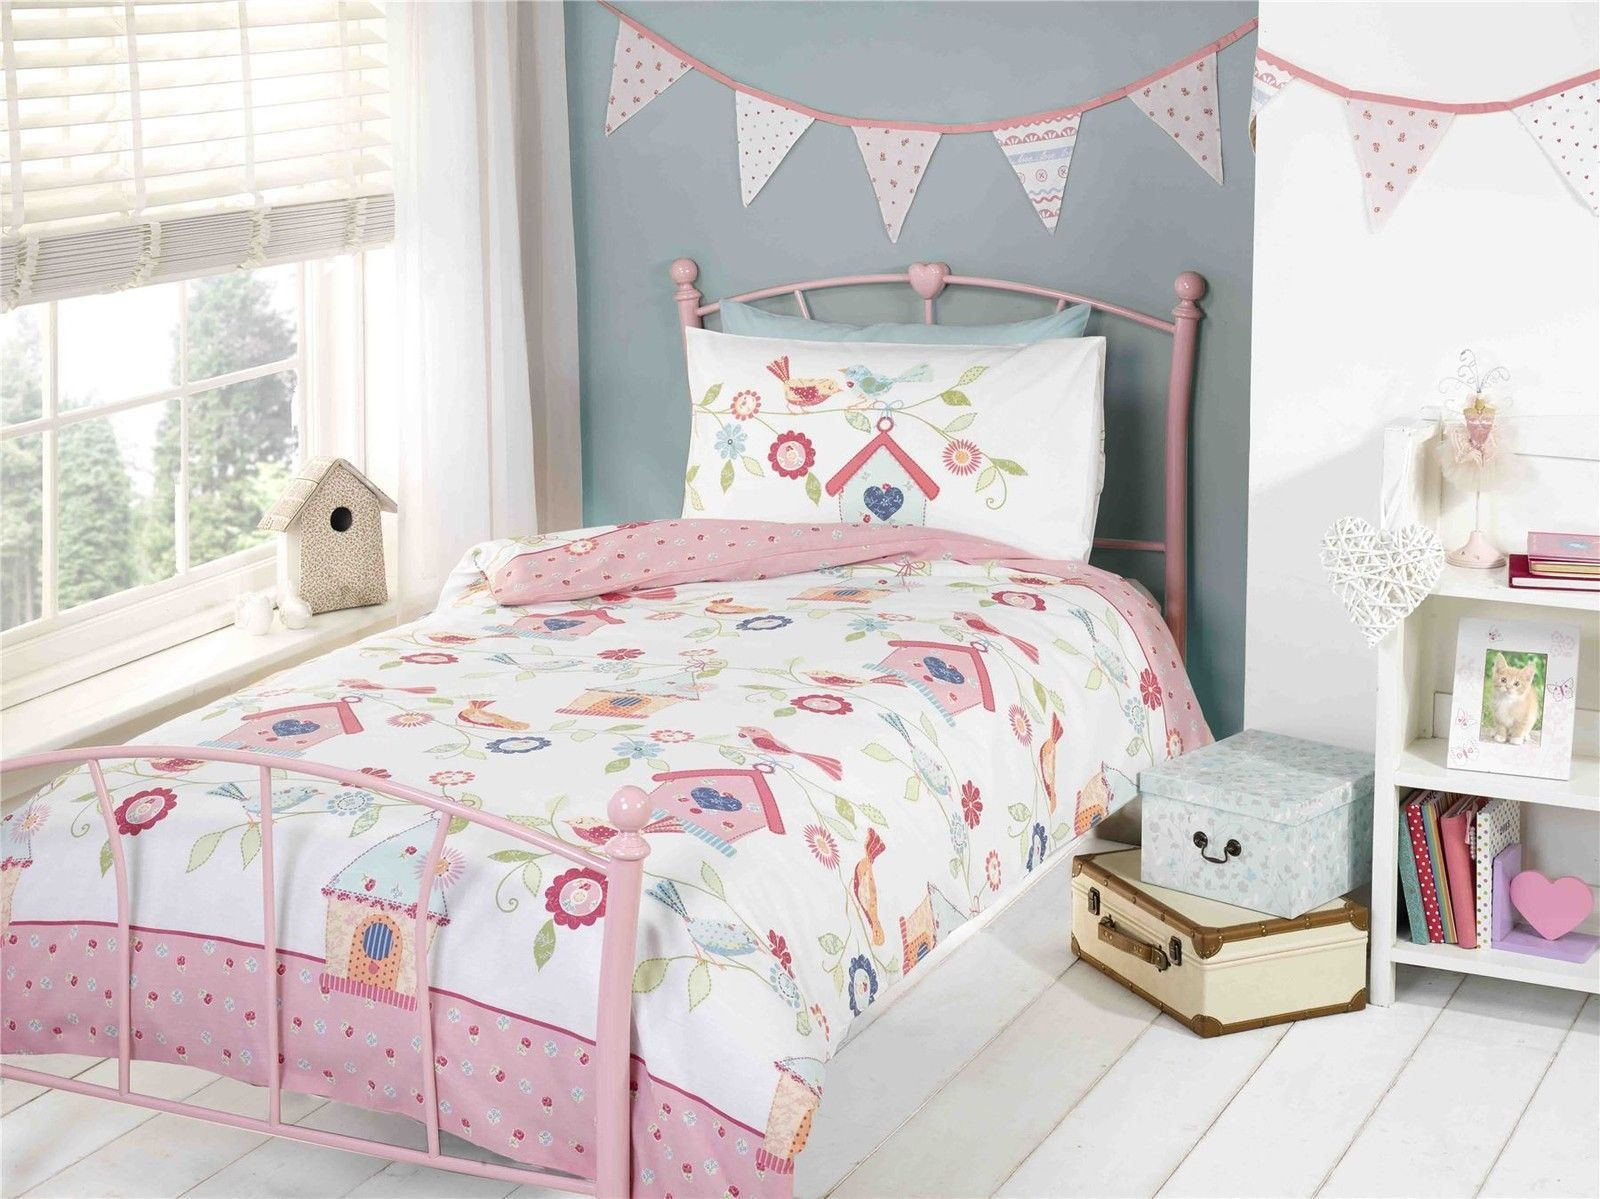 About Girls And Boys Duvet Covers Feifan Furniture Duvet